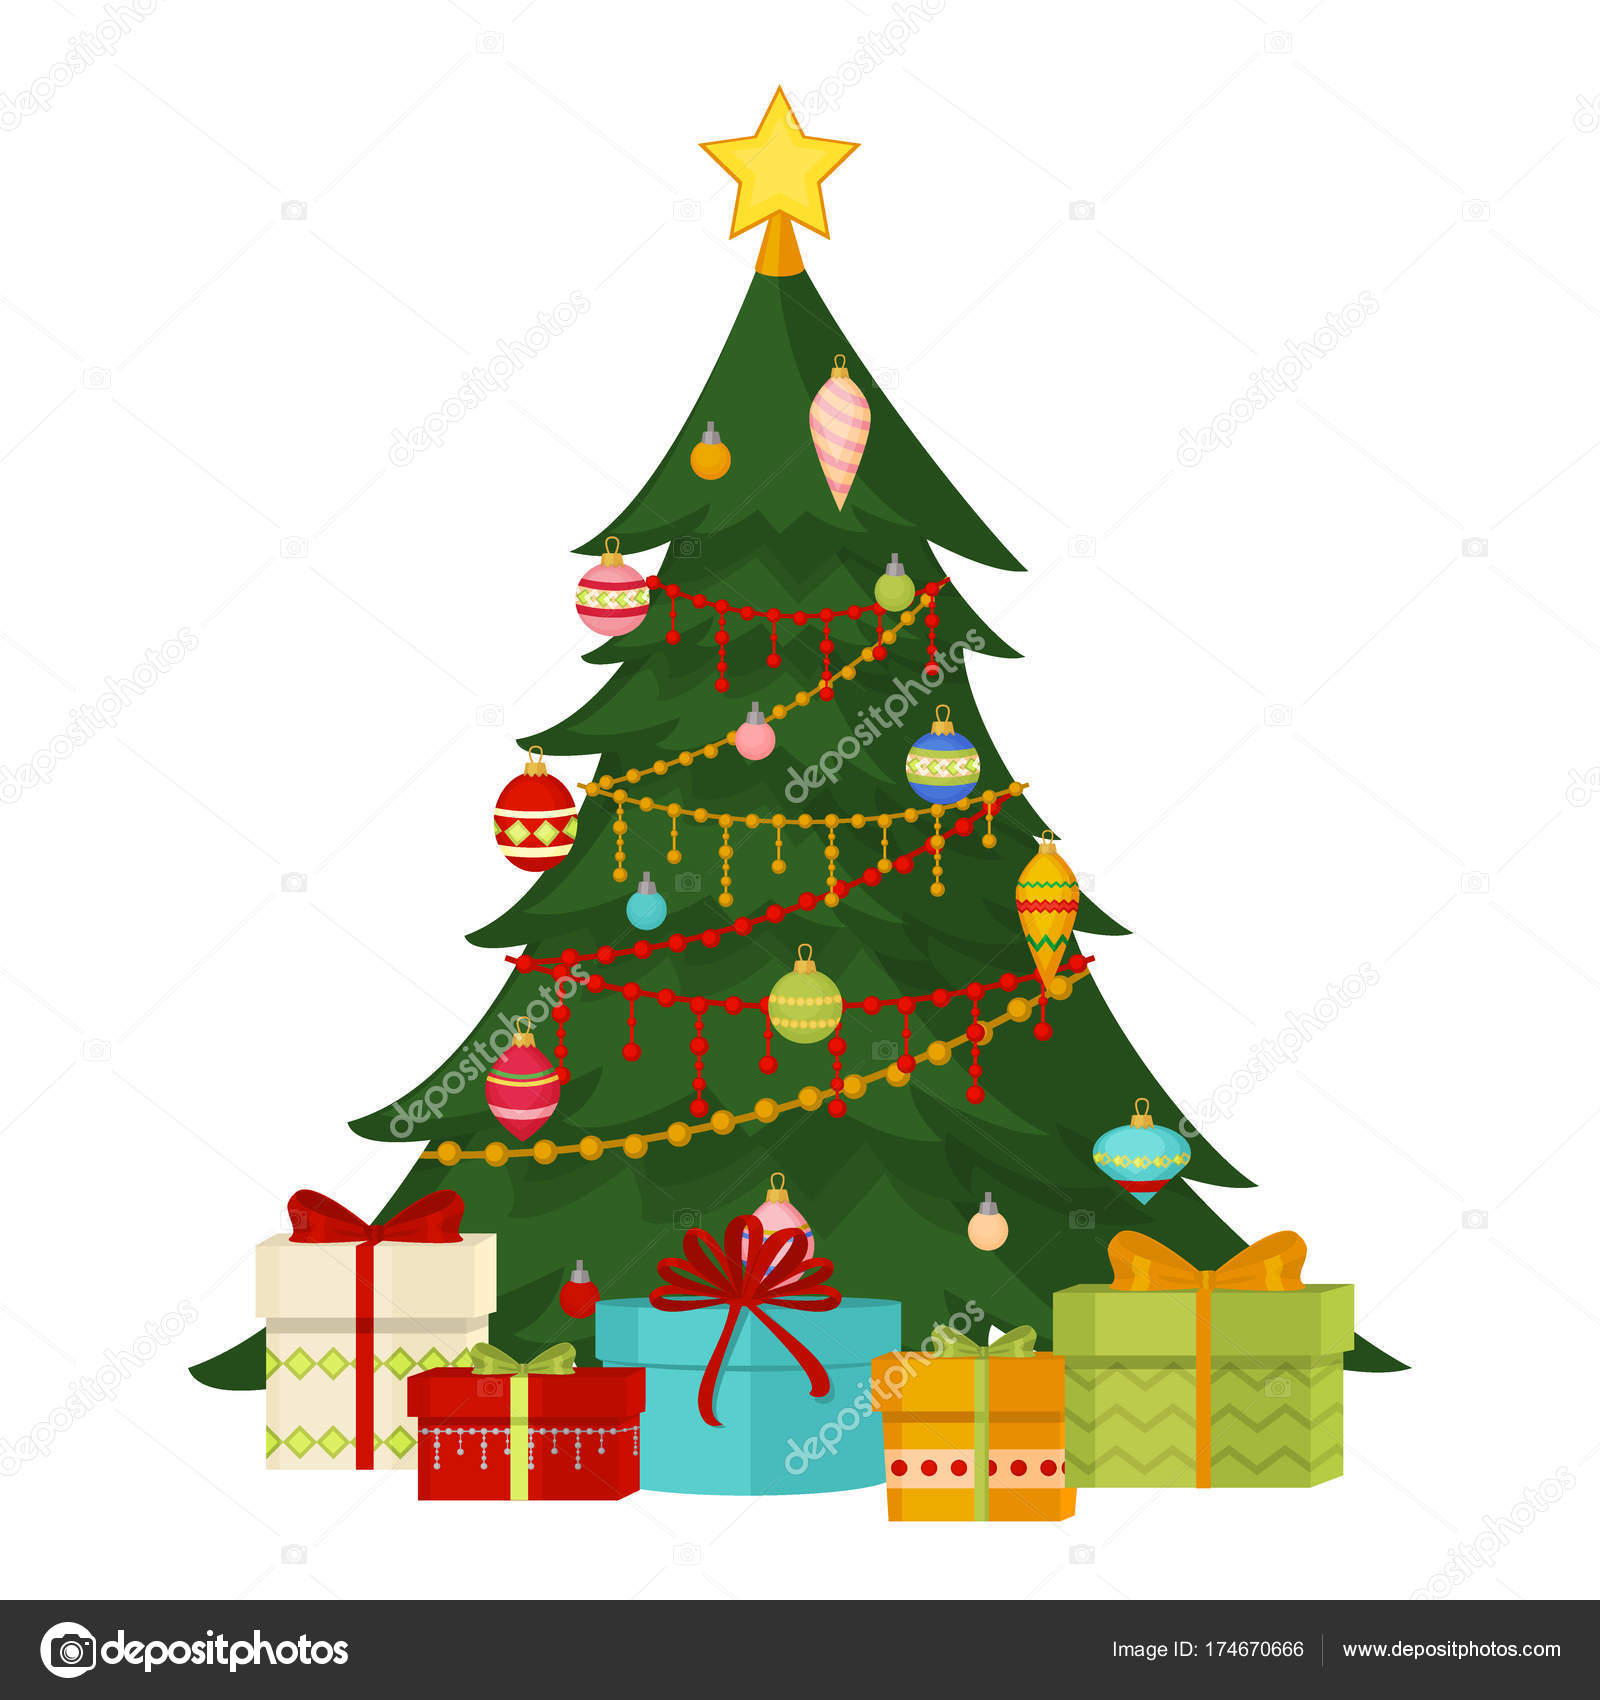 Christmas Tree With Fir Gifts Balls Lights Winter Holiday Gift Card